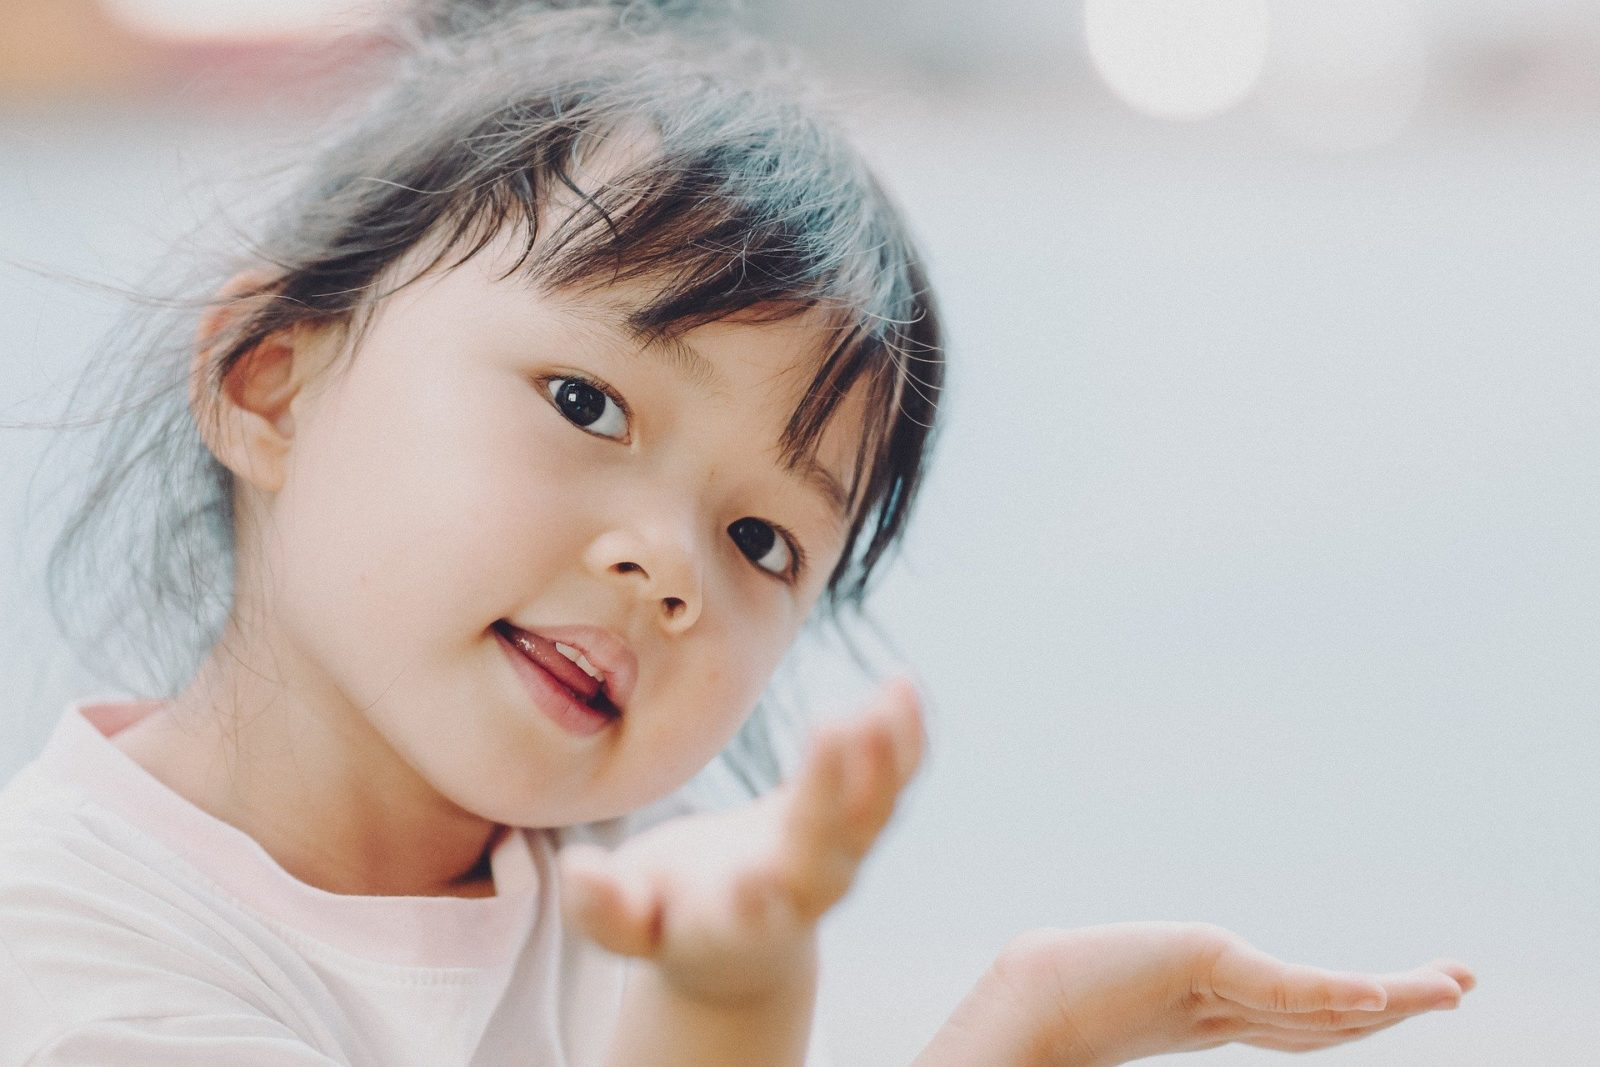 Ease Your Child's Back-to-School Separation Anxiety with Kim Feeney at Butterfly Beginnings Counseling in Davenport, Iowa